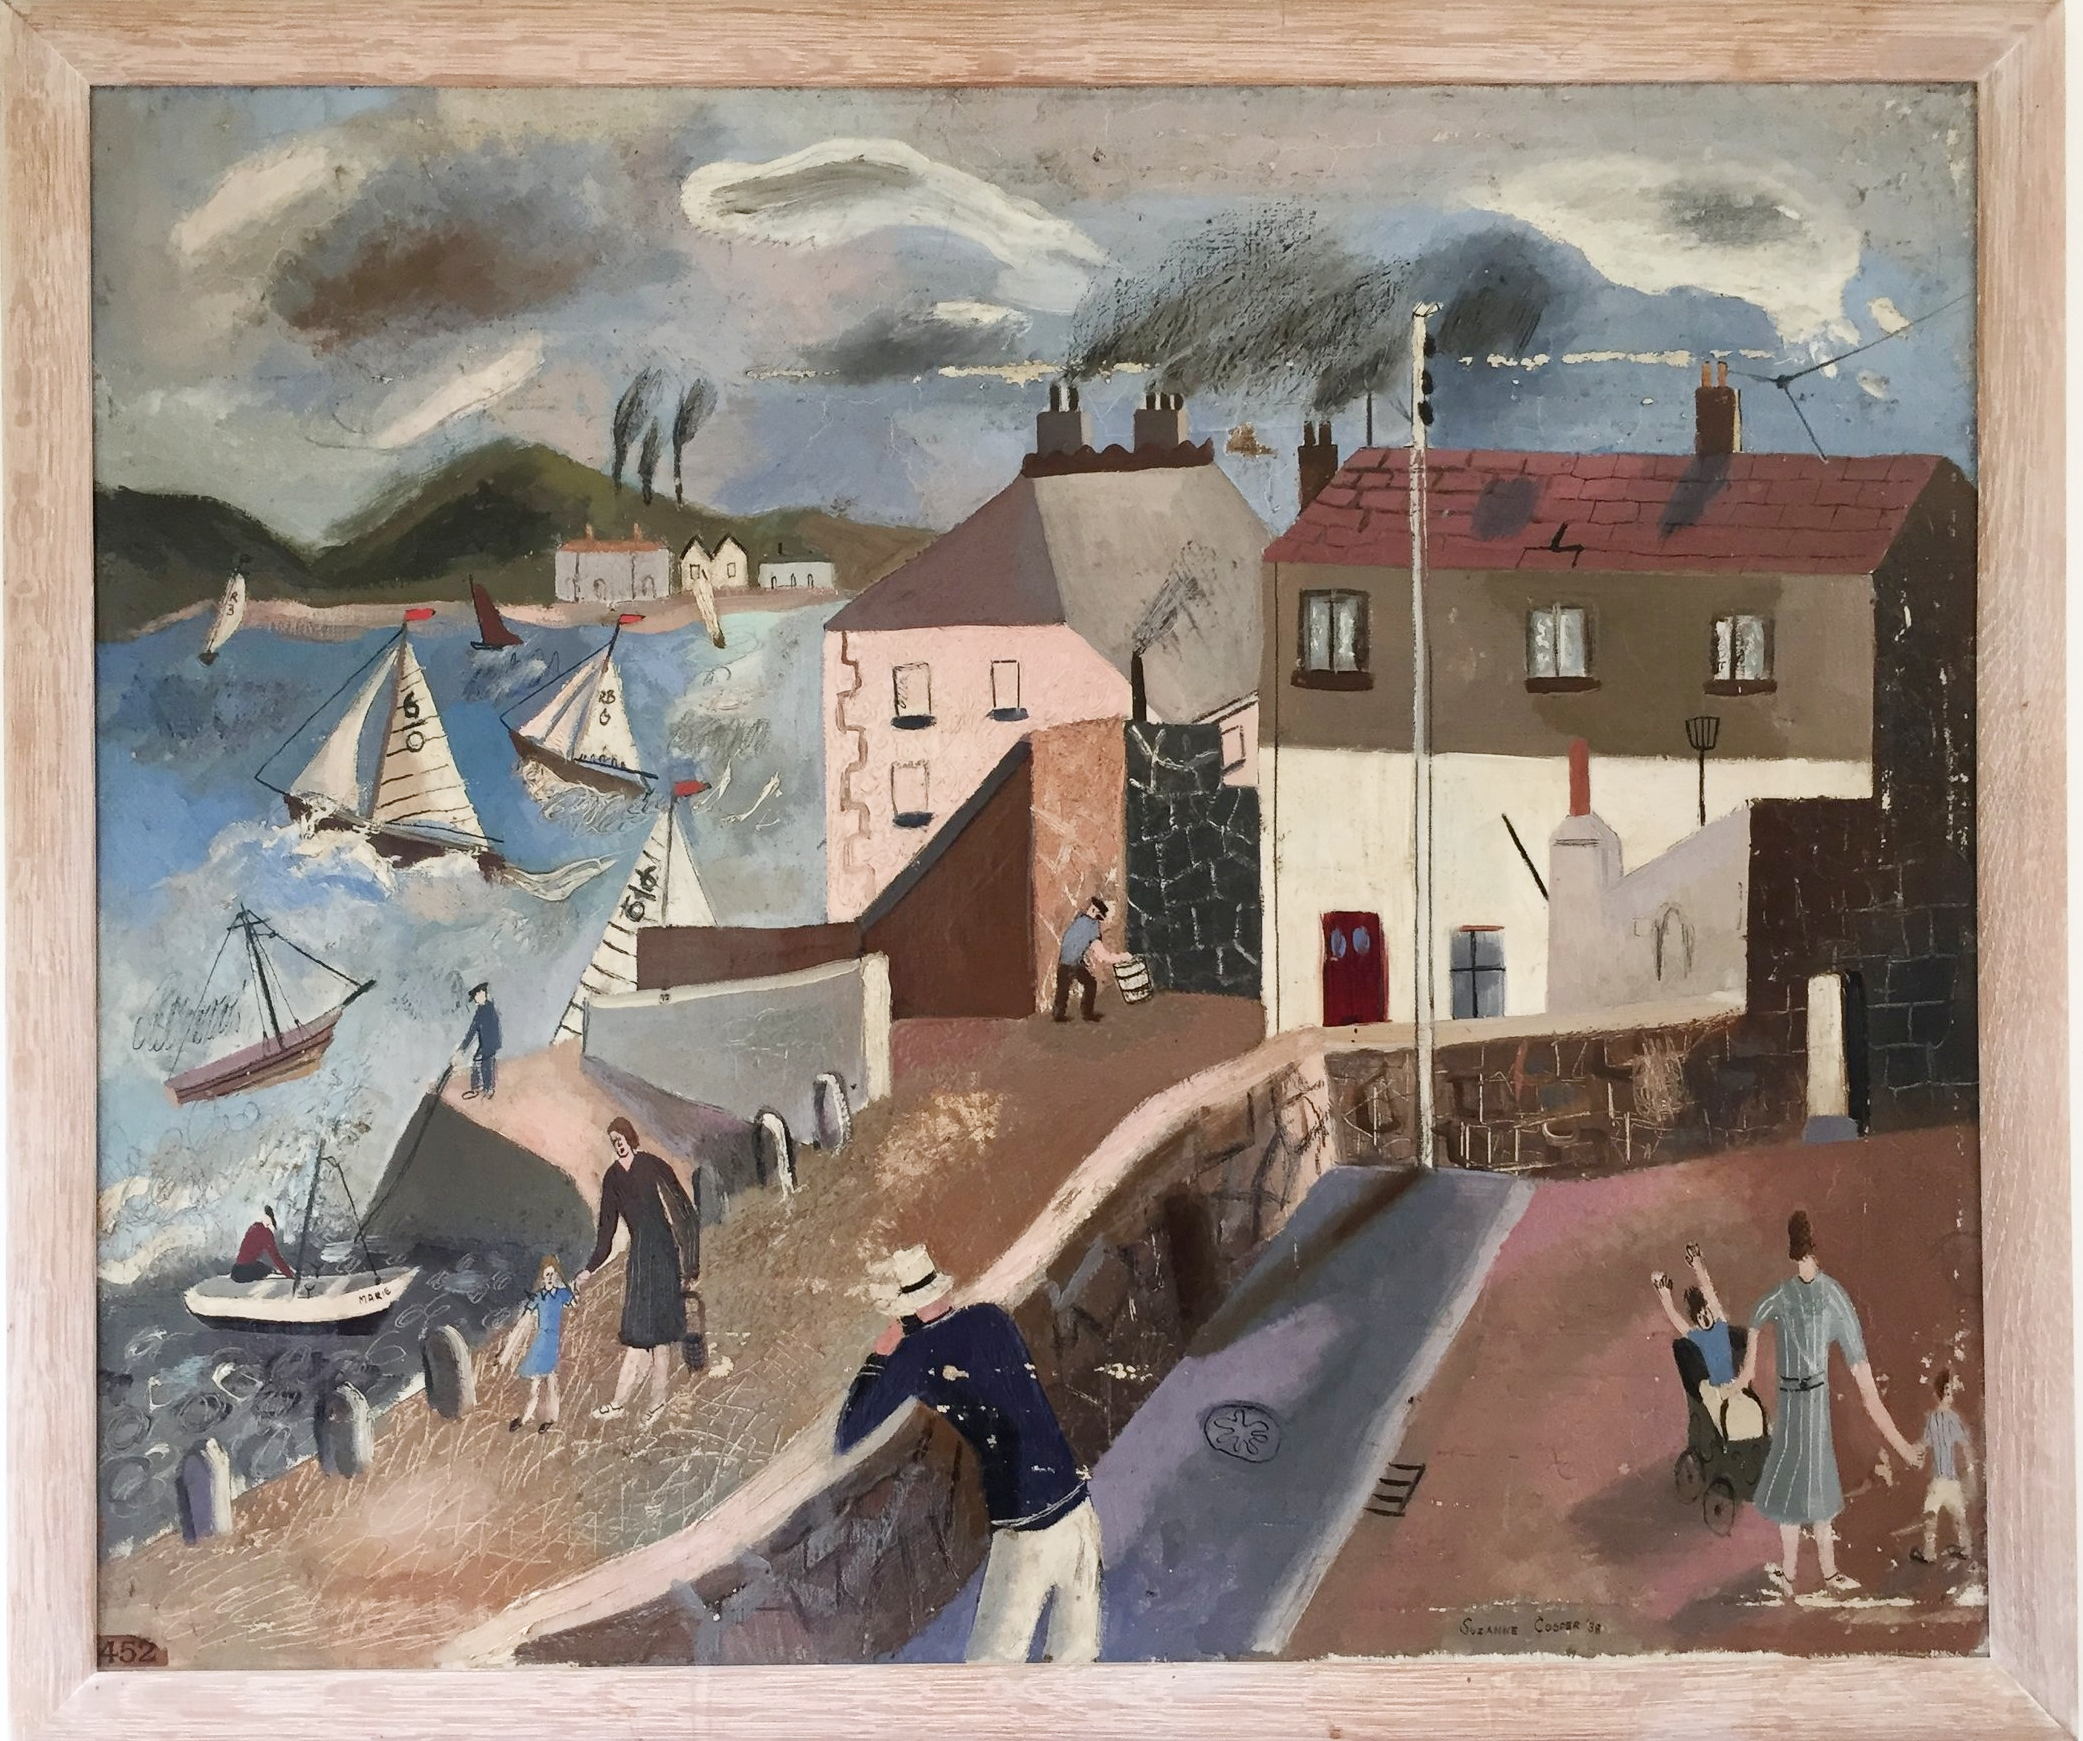 Appledore - Shown with The National Society of Painters, Sculptors and Wood Engravers at the Royal Institute Galleries, Piccadillysigned and dated 1938oil on canvas - 63 x 76 cmsAppledore is a fishing village in Devon. Suzanne Cooper would have visited it while staying with her grandparents. Her grandfather was mayor of Torquay.The child with upflung arms recurs in several of her pictures.